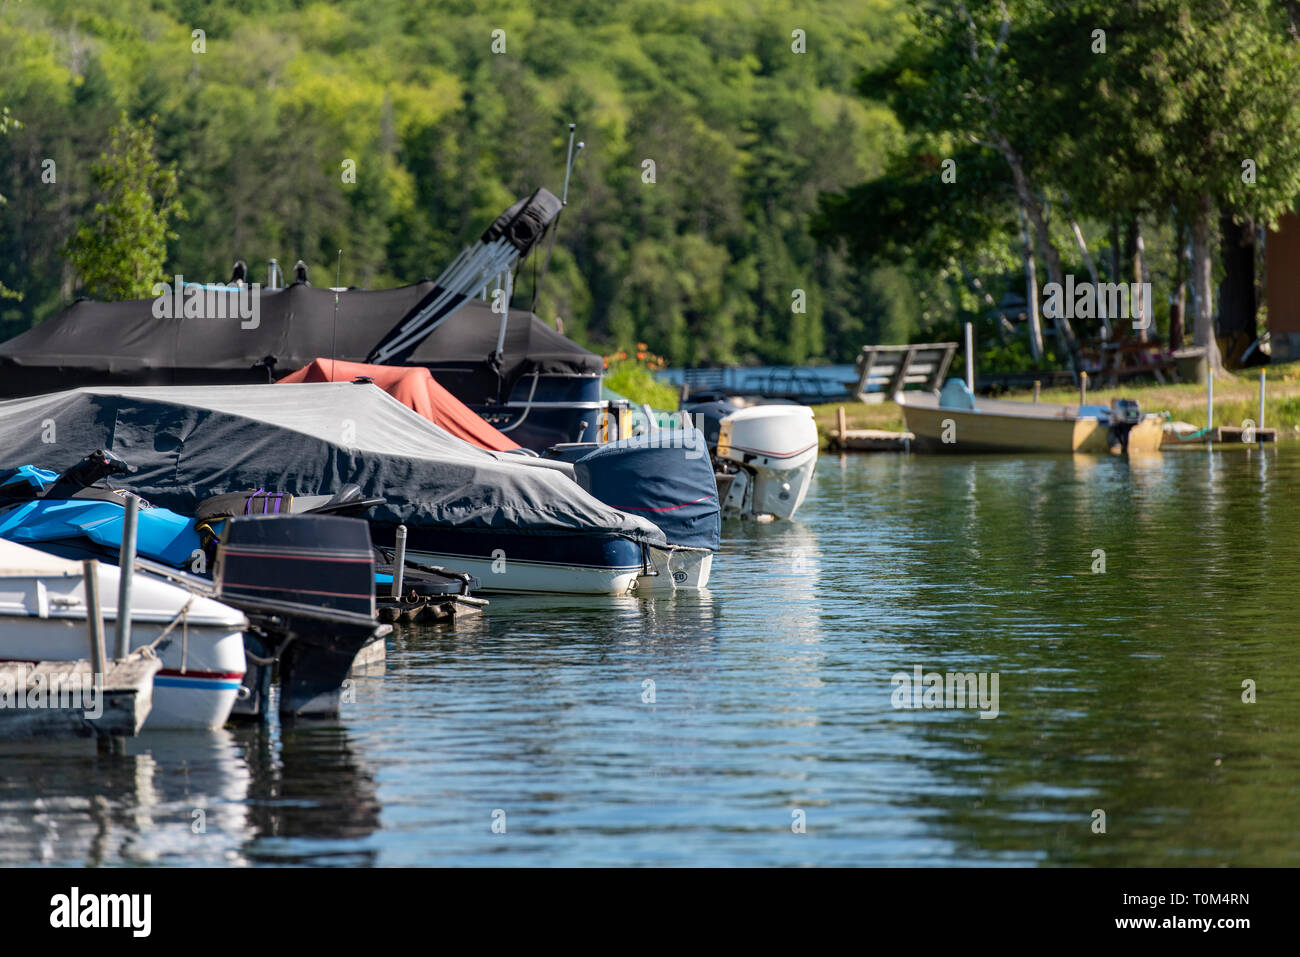 Motorboats docked on a lake in Ontario Canada's Cottage Country on a summer morning. - Stock Image